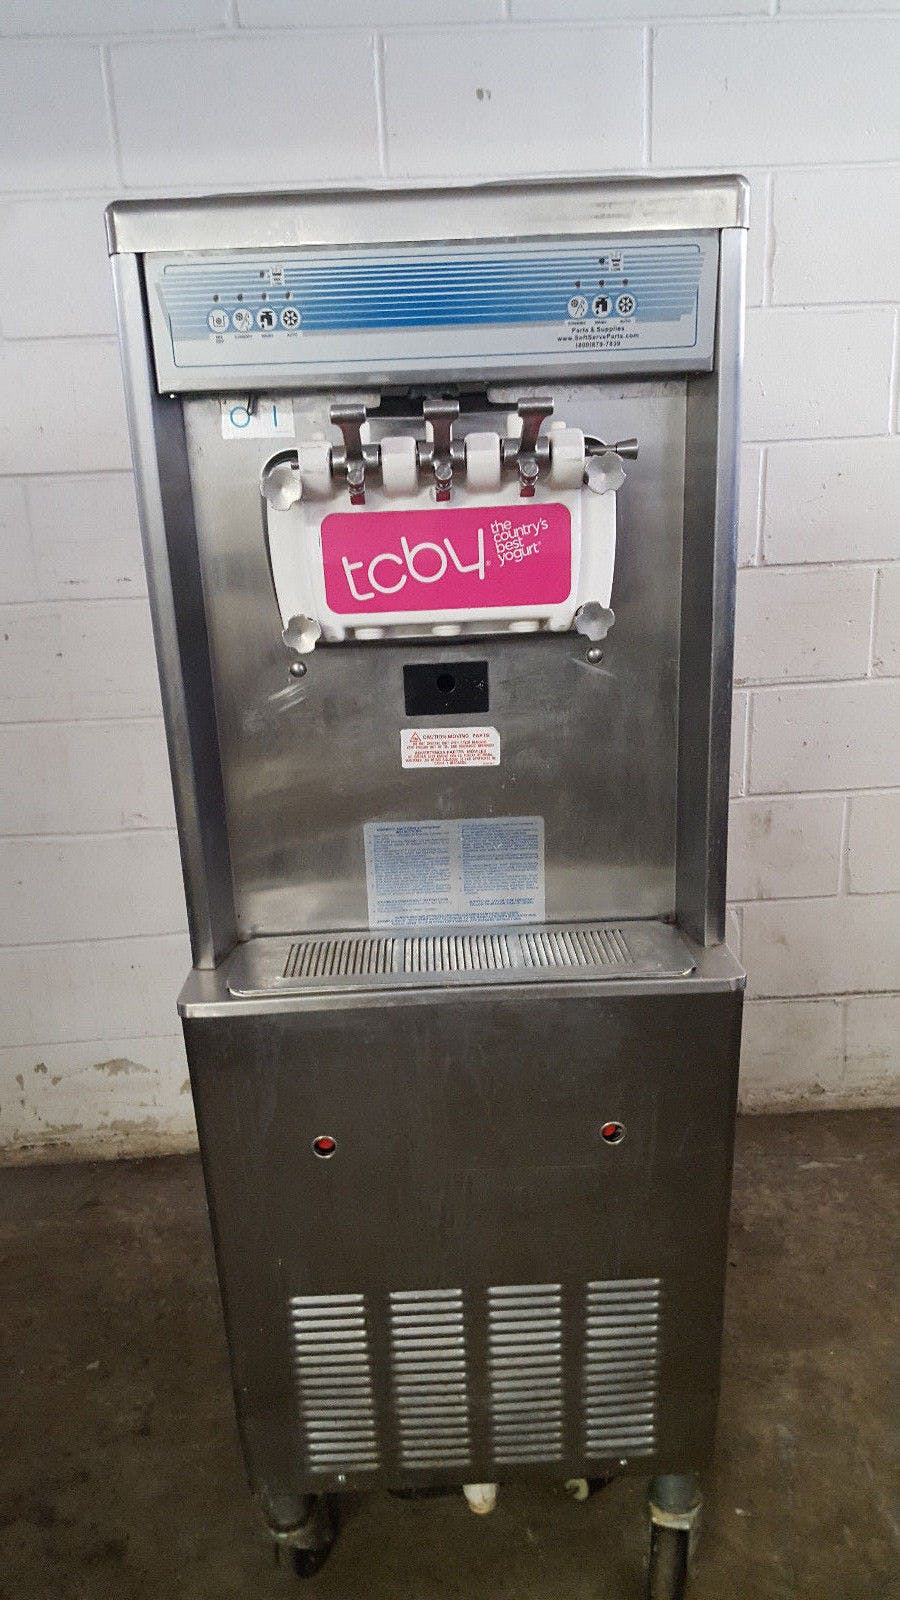 Taylor 794-27 Ice Cream Machine 2 Flavor Twist Water Cooled Tested 208-230v - sold by Jak's Restaurant Supply